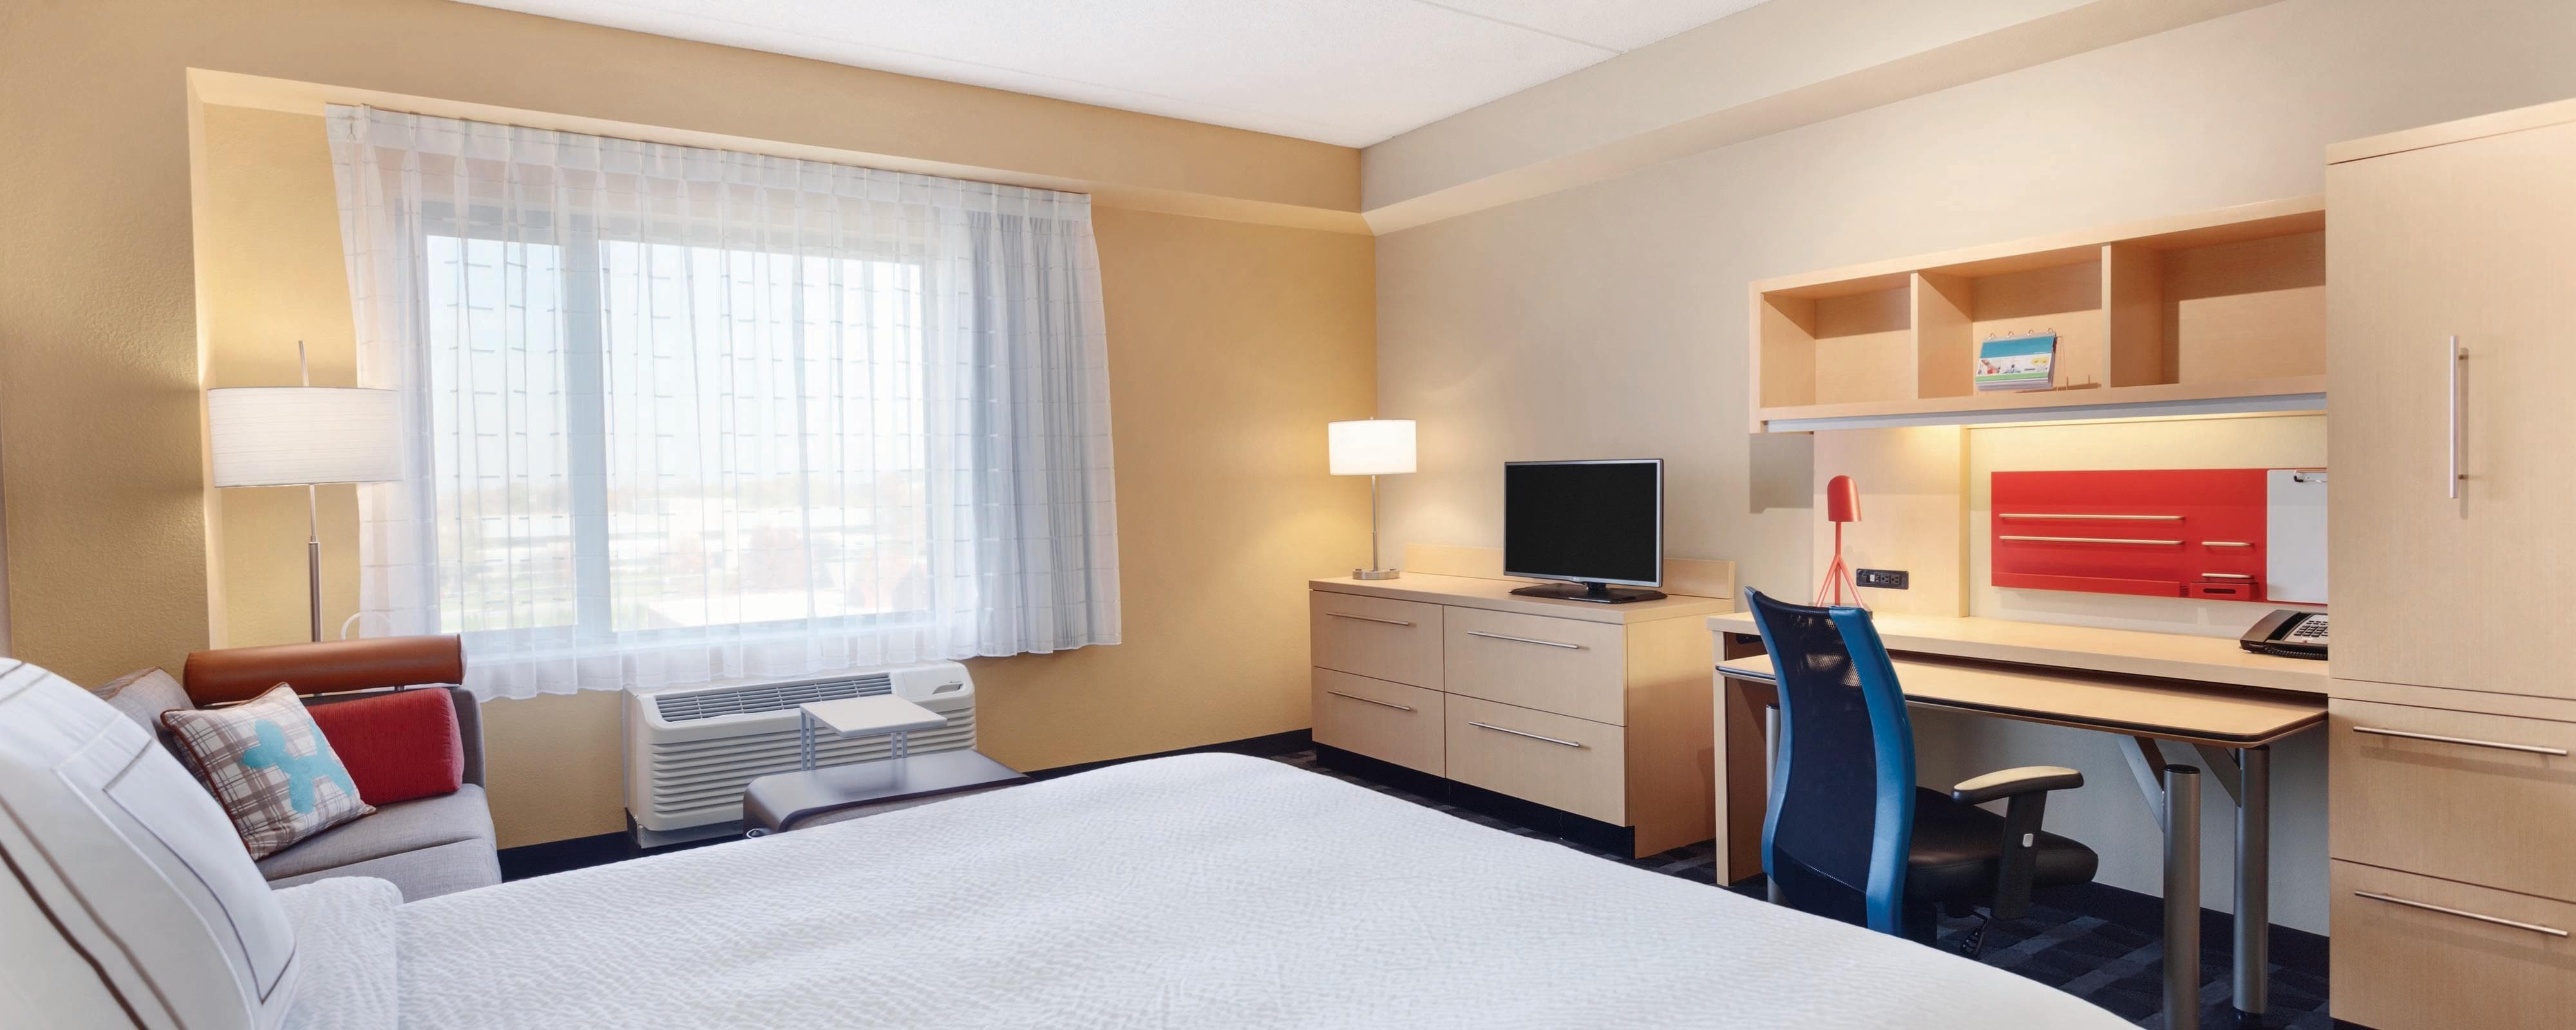 Hotels in Mechanicsburg